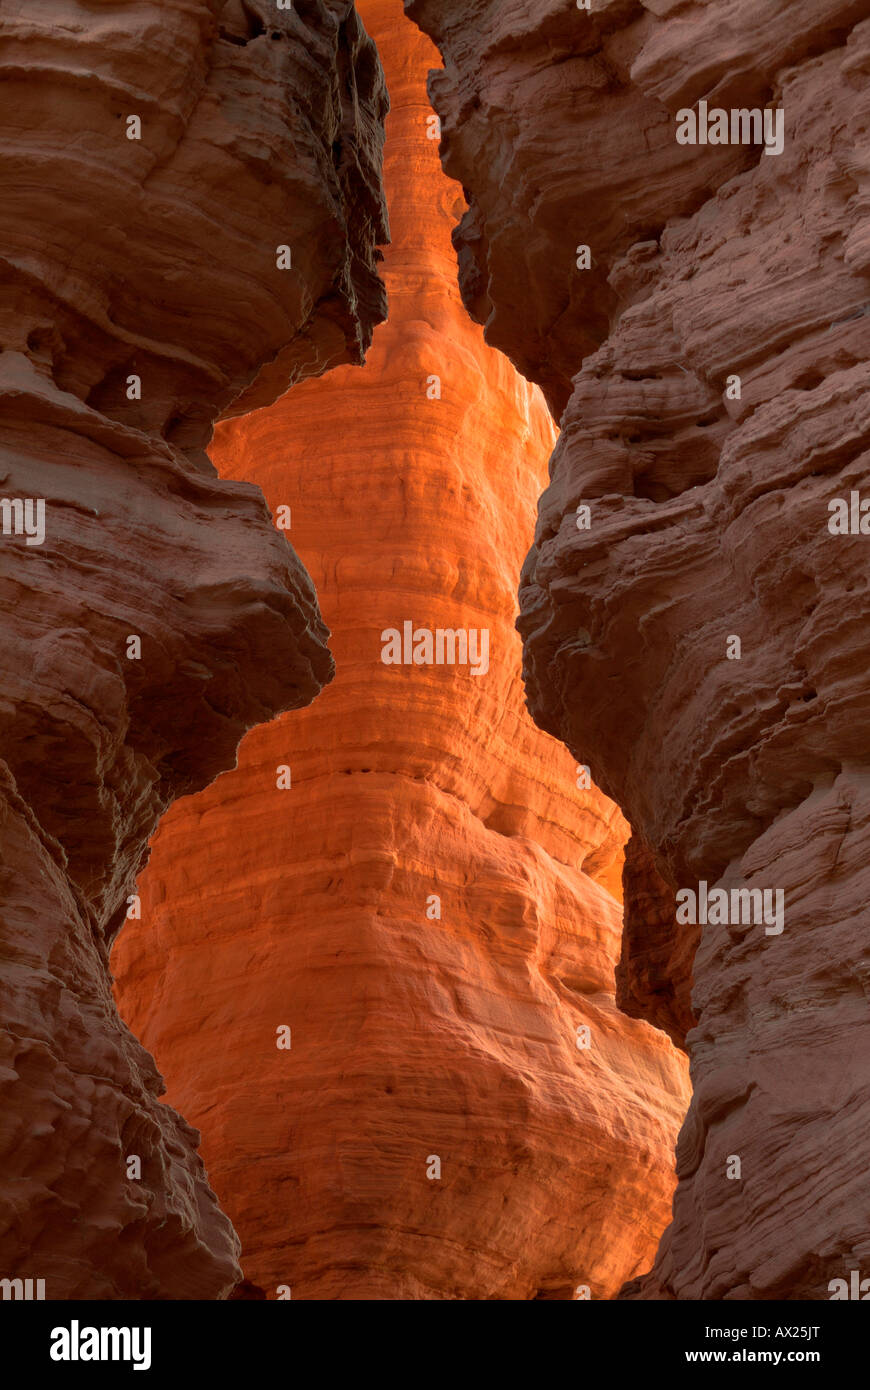 Rocks lit from behind by the setting sun, photographed through a crevasse, Altschlossfelsen rock formations, Pfaelzer - Stock Image